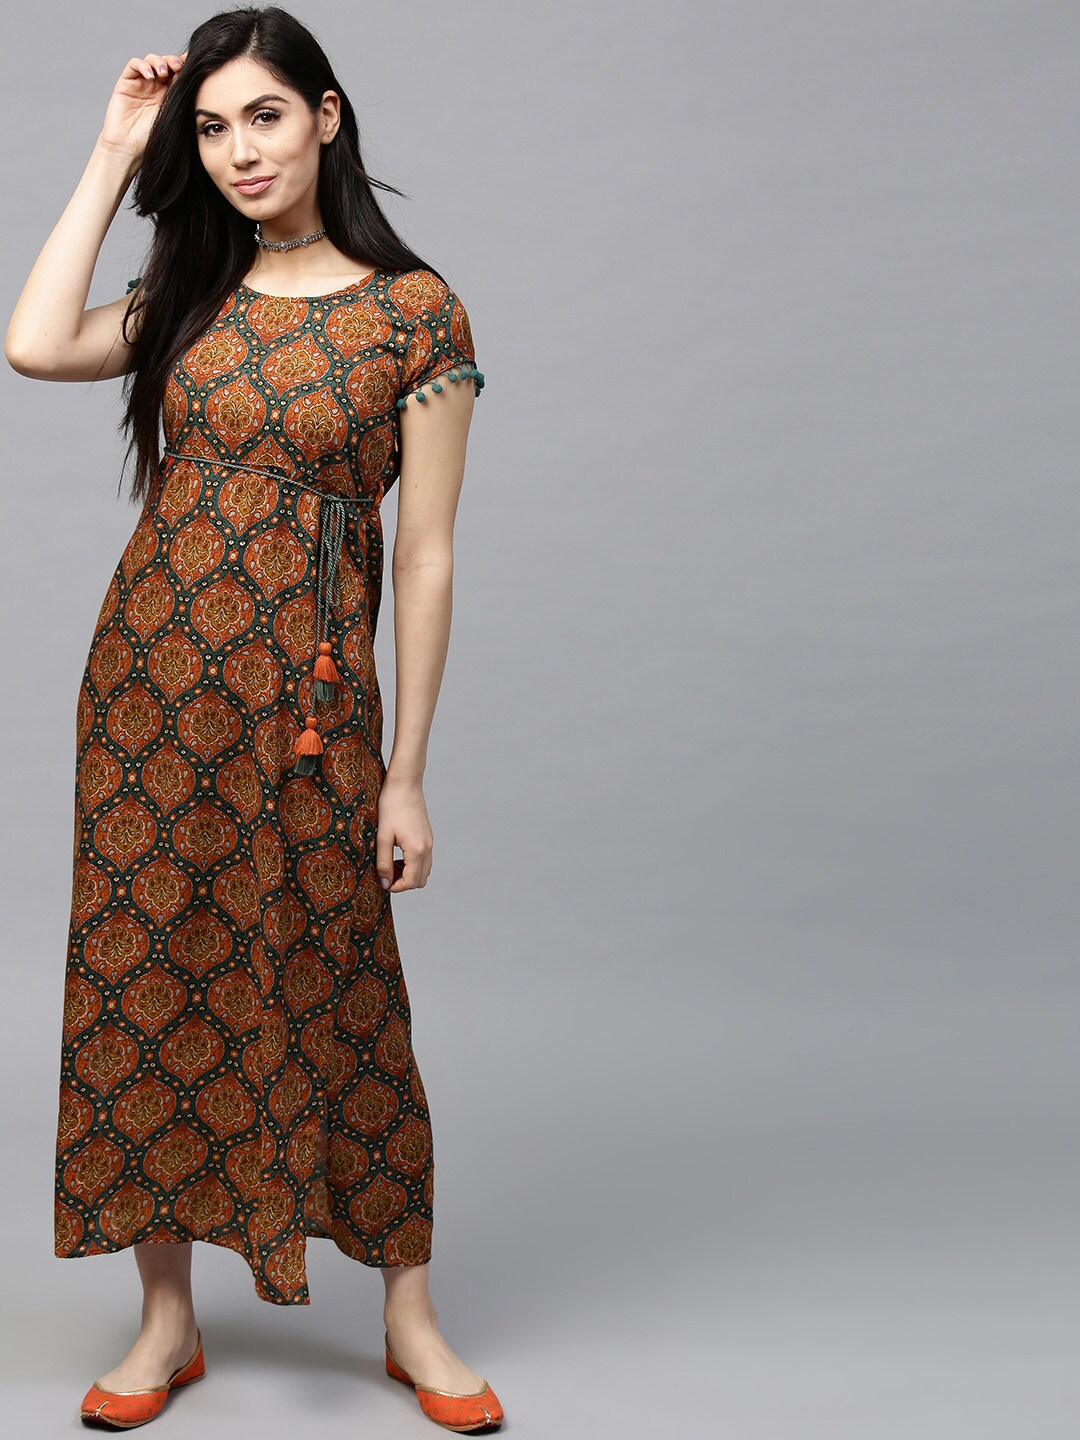 51df134f45 Long Dresses - Buy Maxi Dresses for Women Online in India - Upto 70% OFF